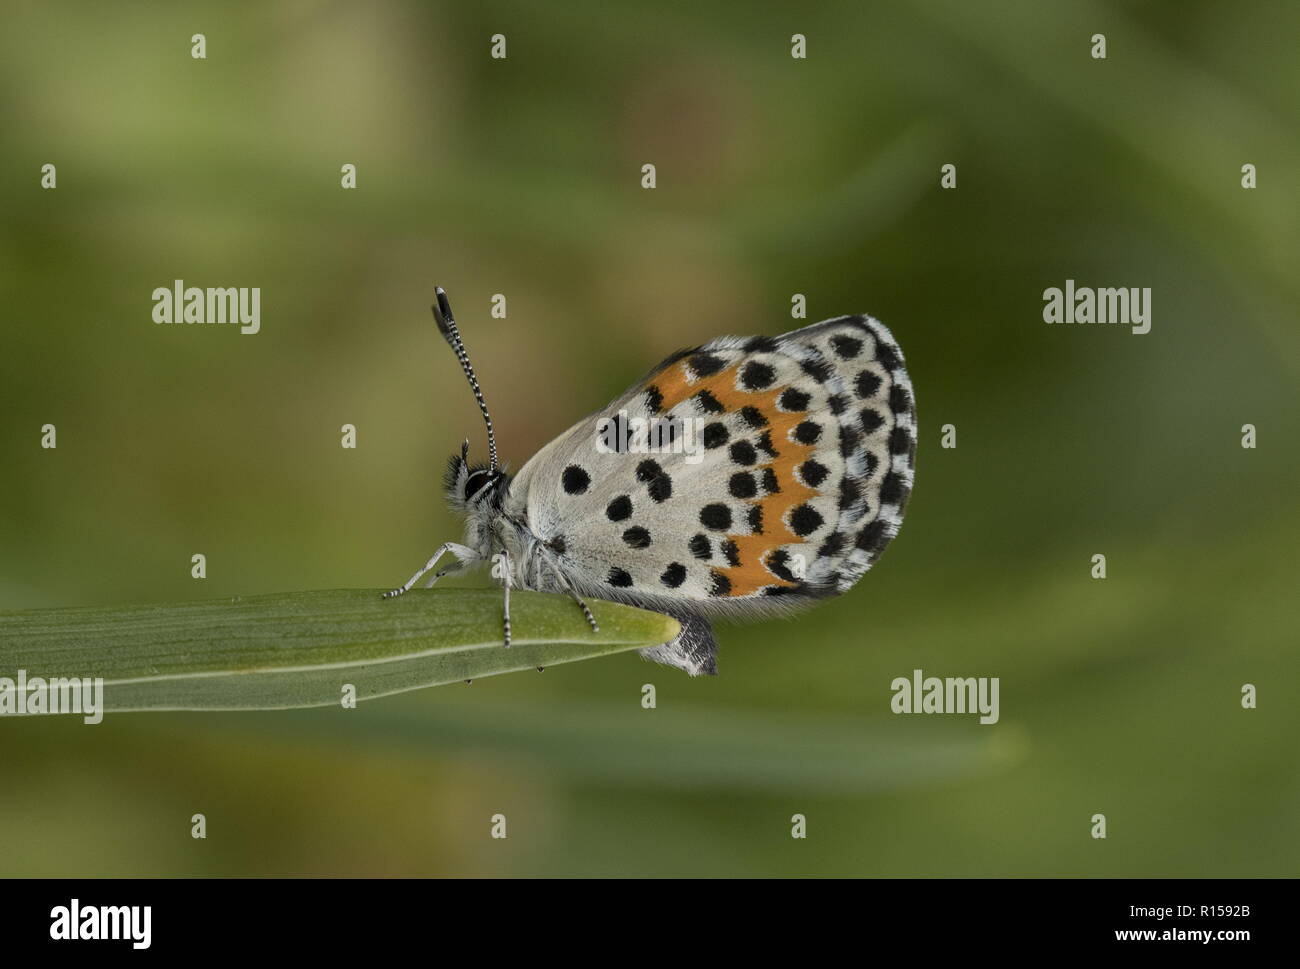 Chequered Blue, Scolitantides orion settled on leaf in limestone grassland, Croatia. - Stock Image